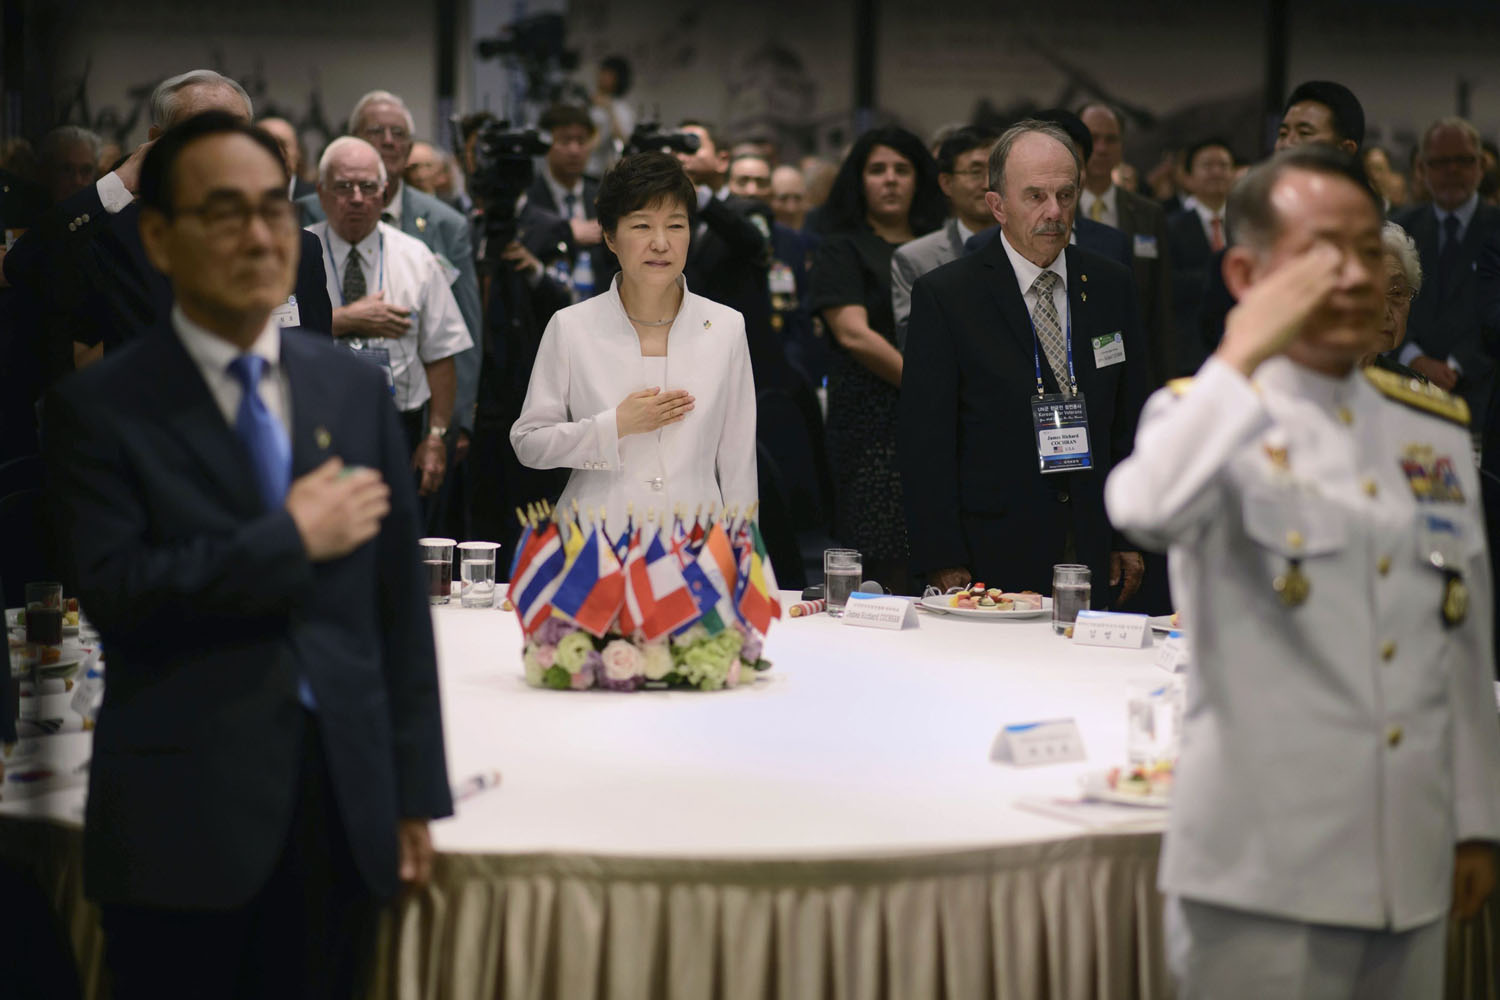 Jun. 24, 2014. South Korea's President Park Geun-hye (C) listens to the national anthem as she attends a  Korean War Veterans Commeroration Ceremony  in Seoul.